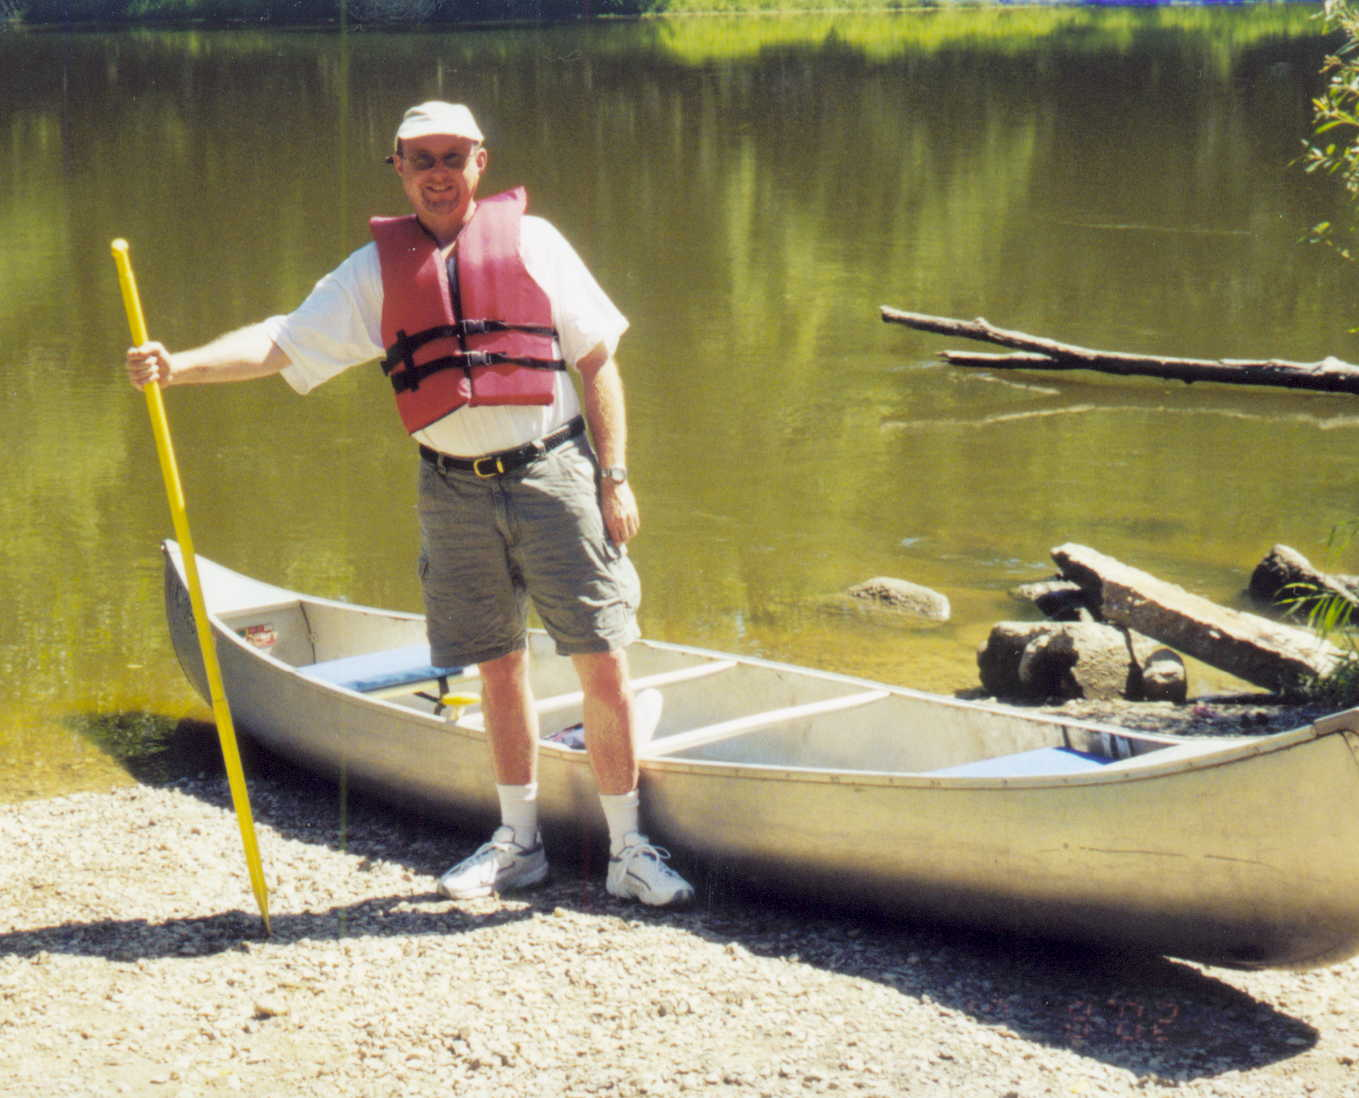 Old Allegan Canoe Rental & Livery